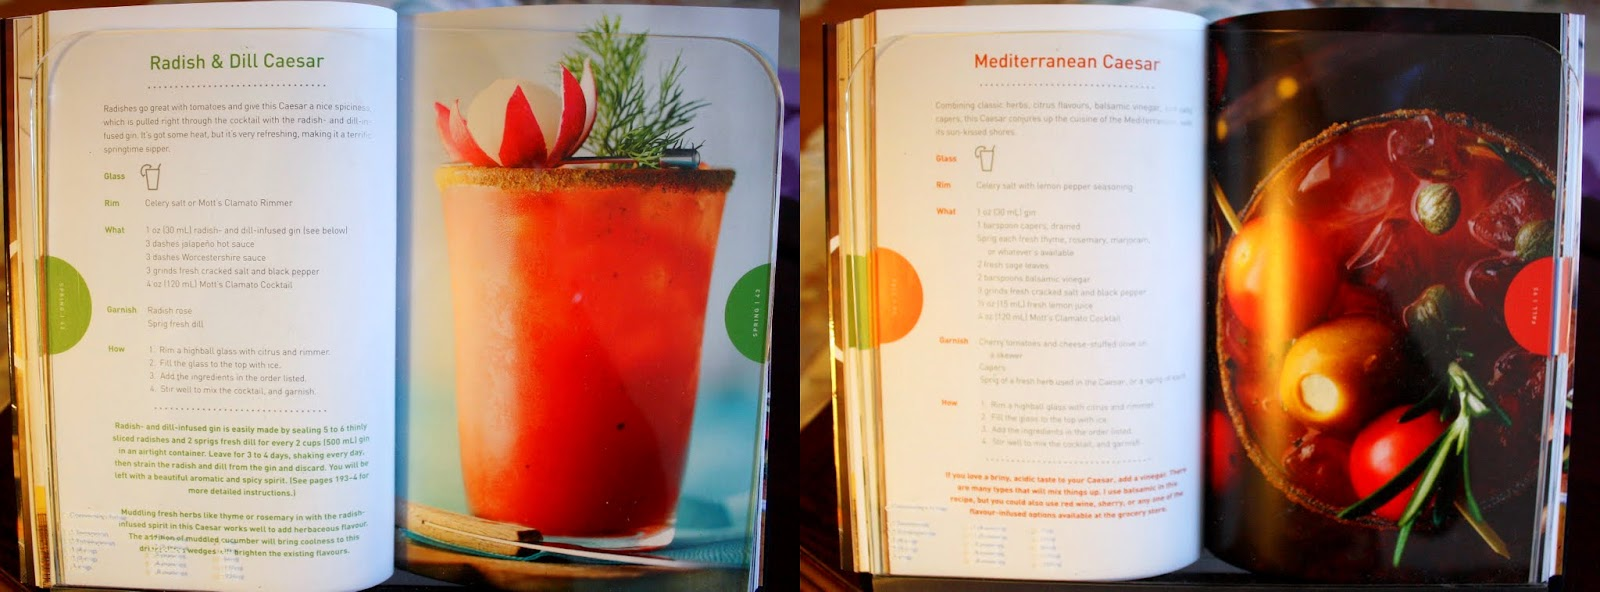 how to make a caesar drink